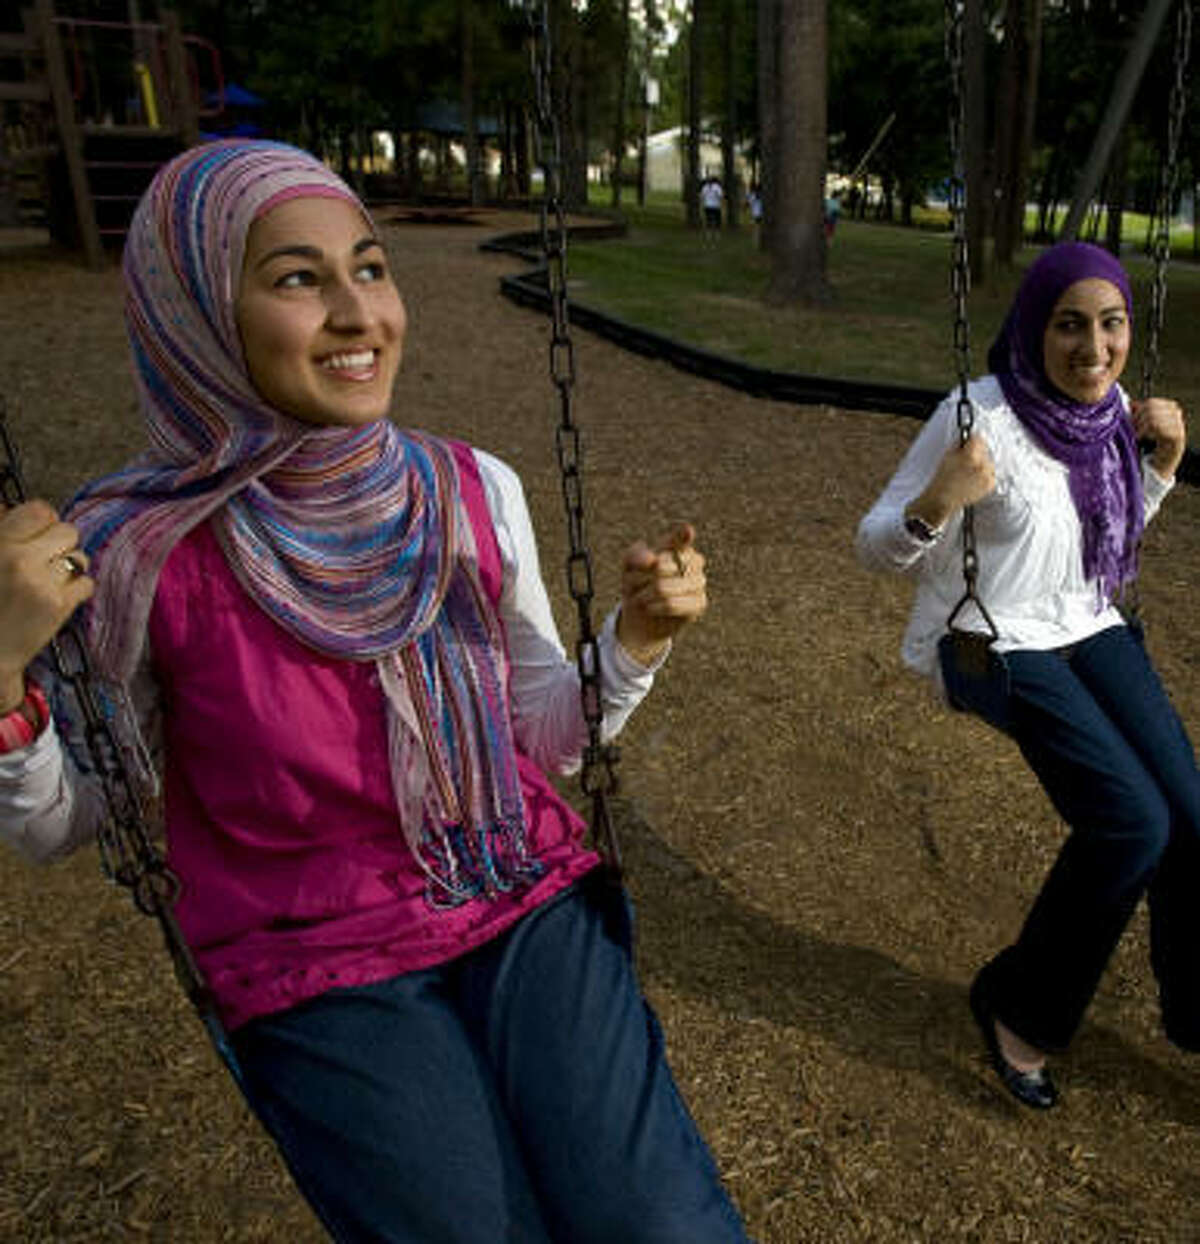 Sisters Huda, 21, left, and Wardah Khalid, 24, of Spring, said they and their sister, Thuba, 19, decided last summer to wear the hijab after attending a Muslim conference.